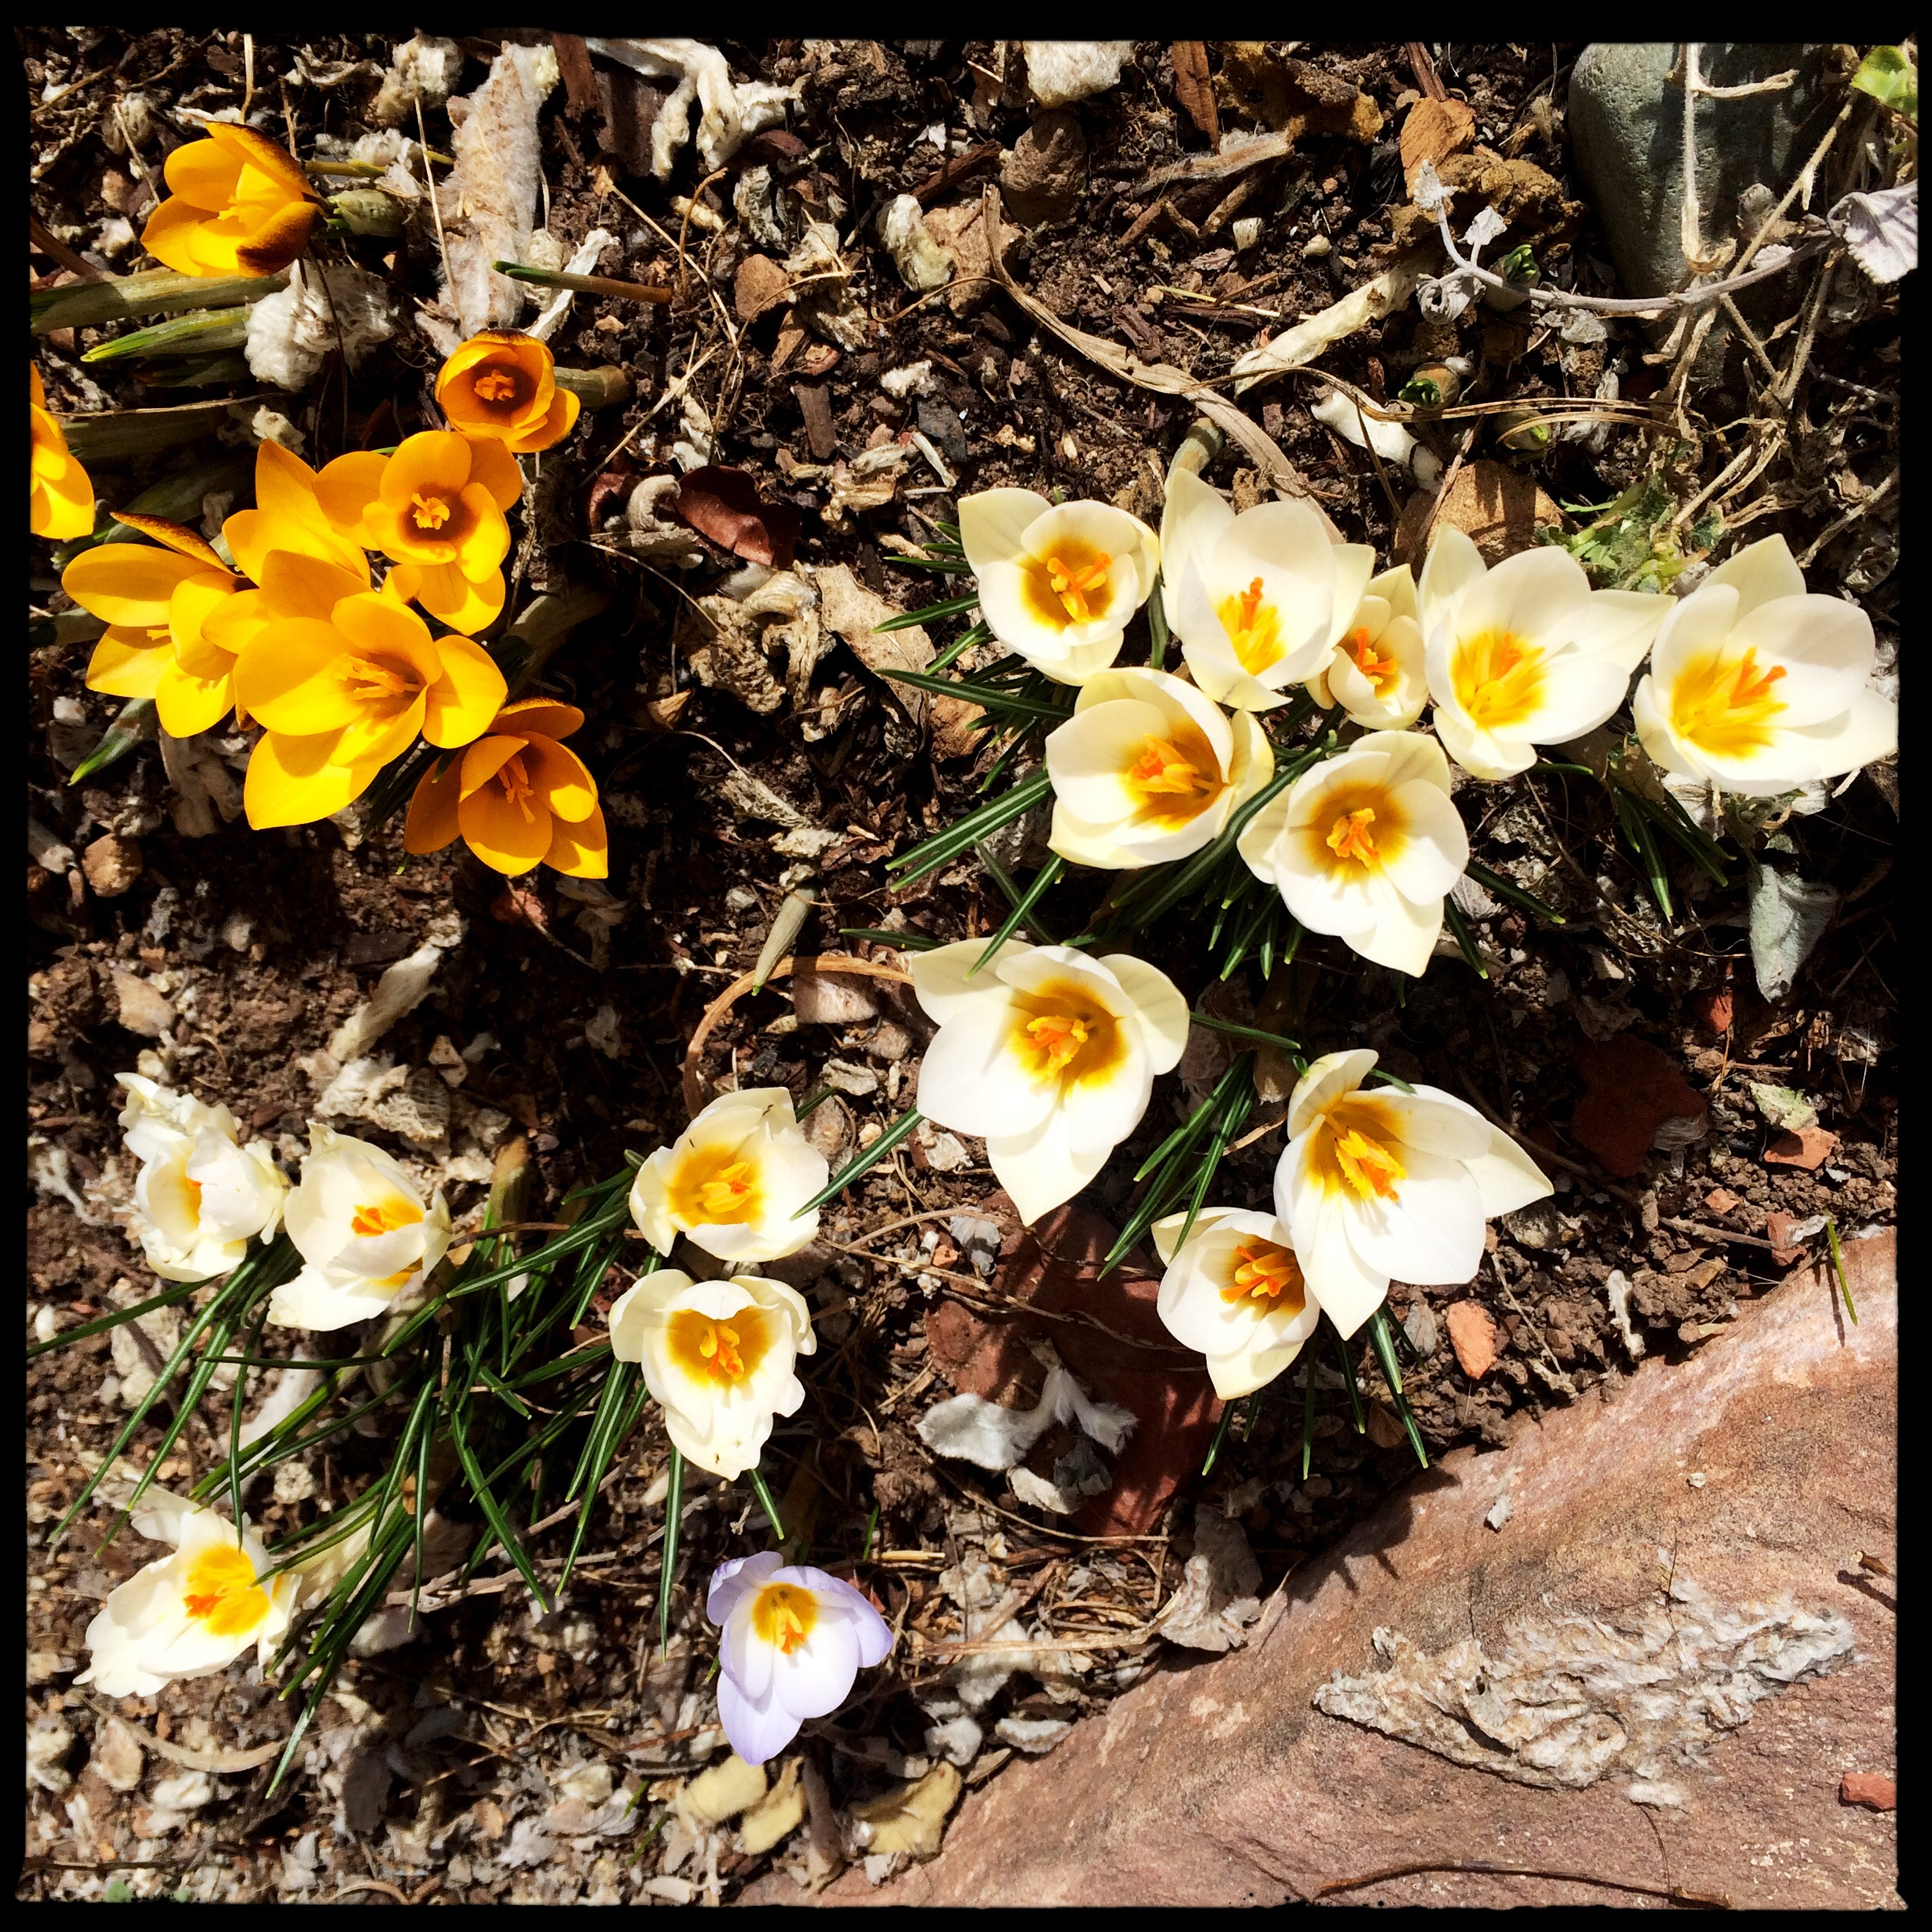 The first crocuses opened this morning, bereft of bees.